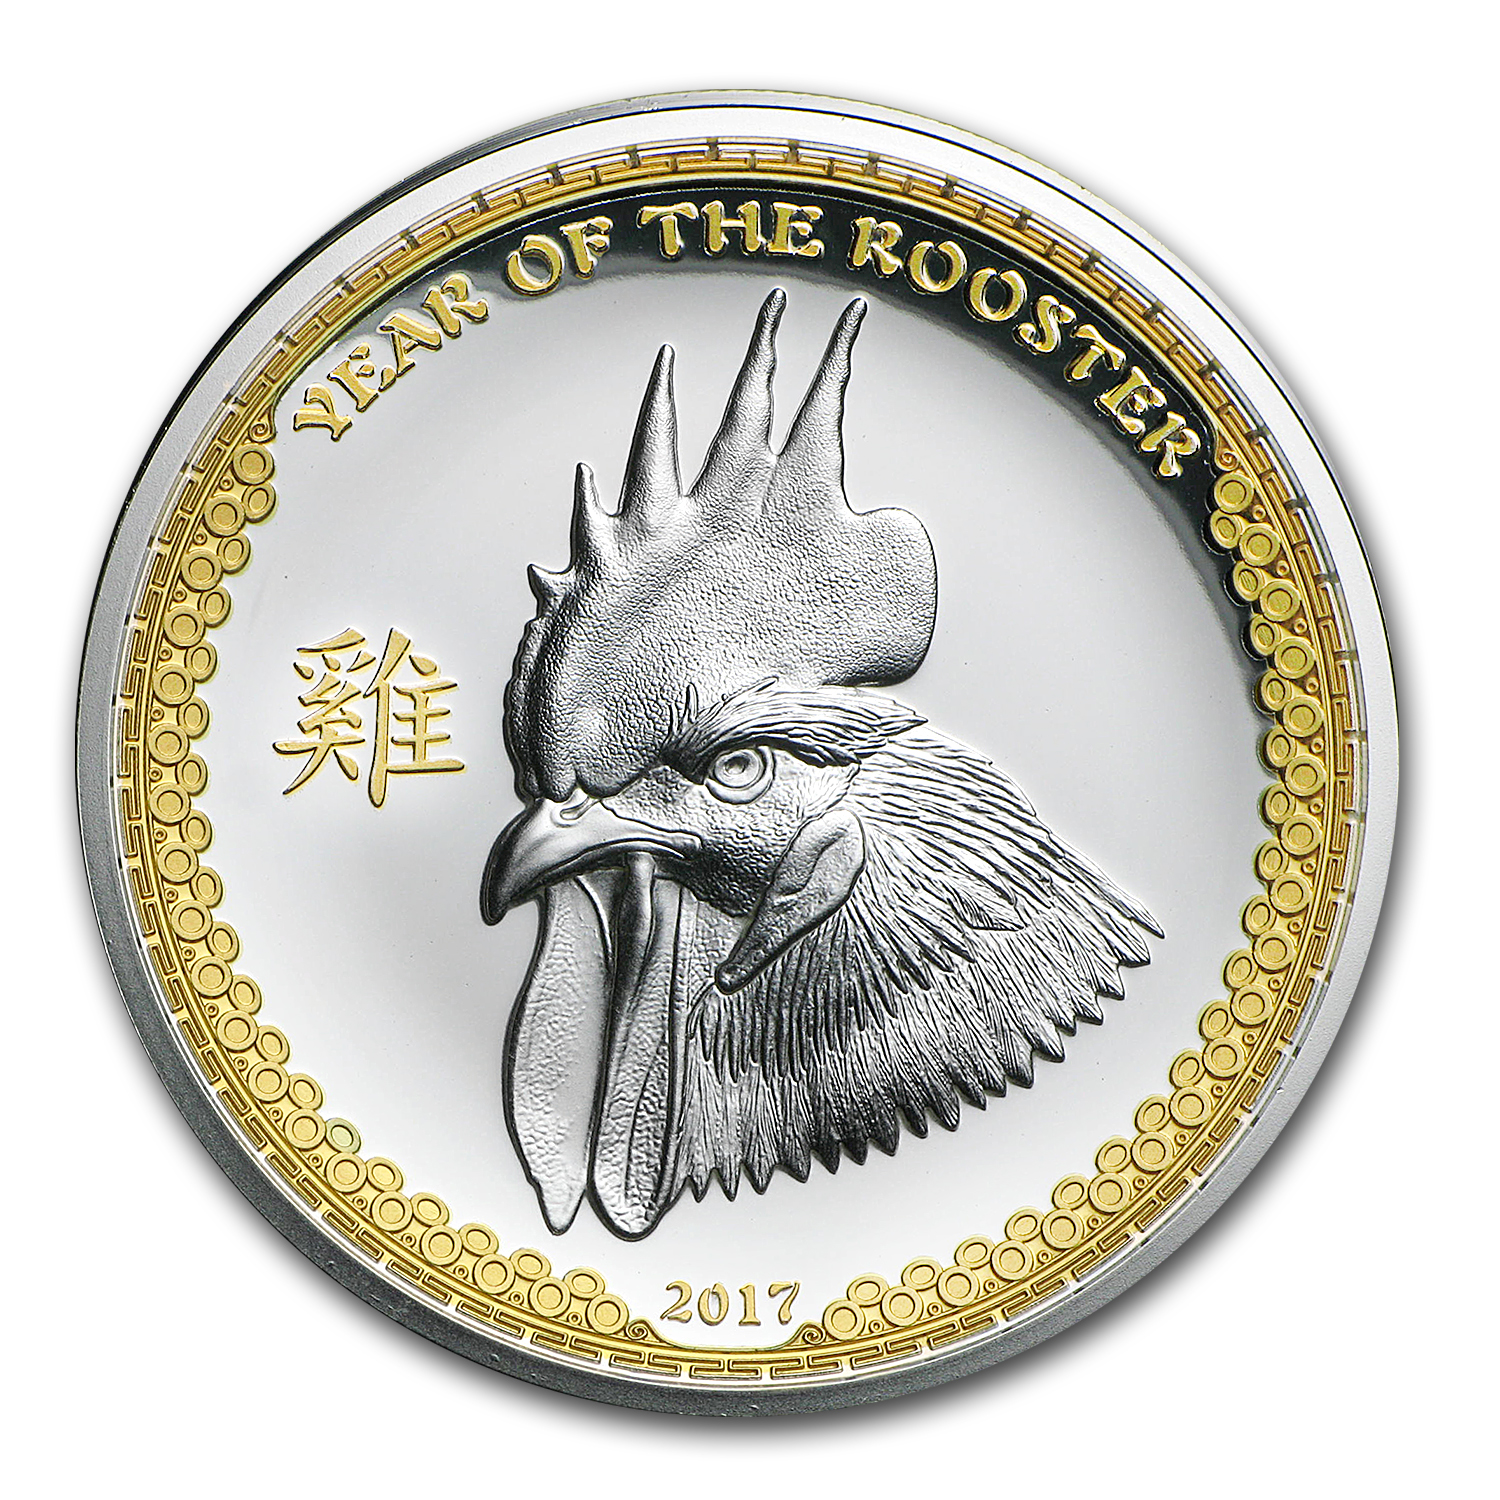 2017 Palau 1 oz Silver $5 Year of the Rooster Ultra High Relief